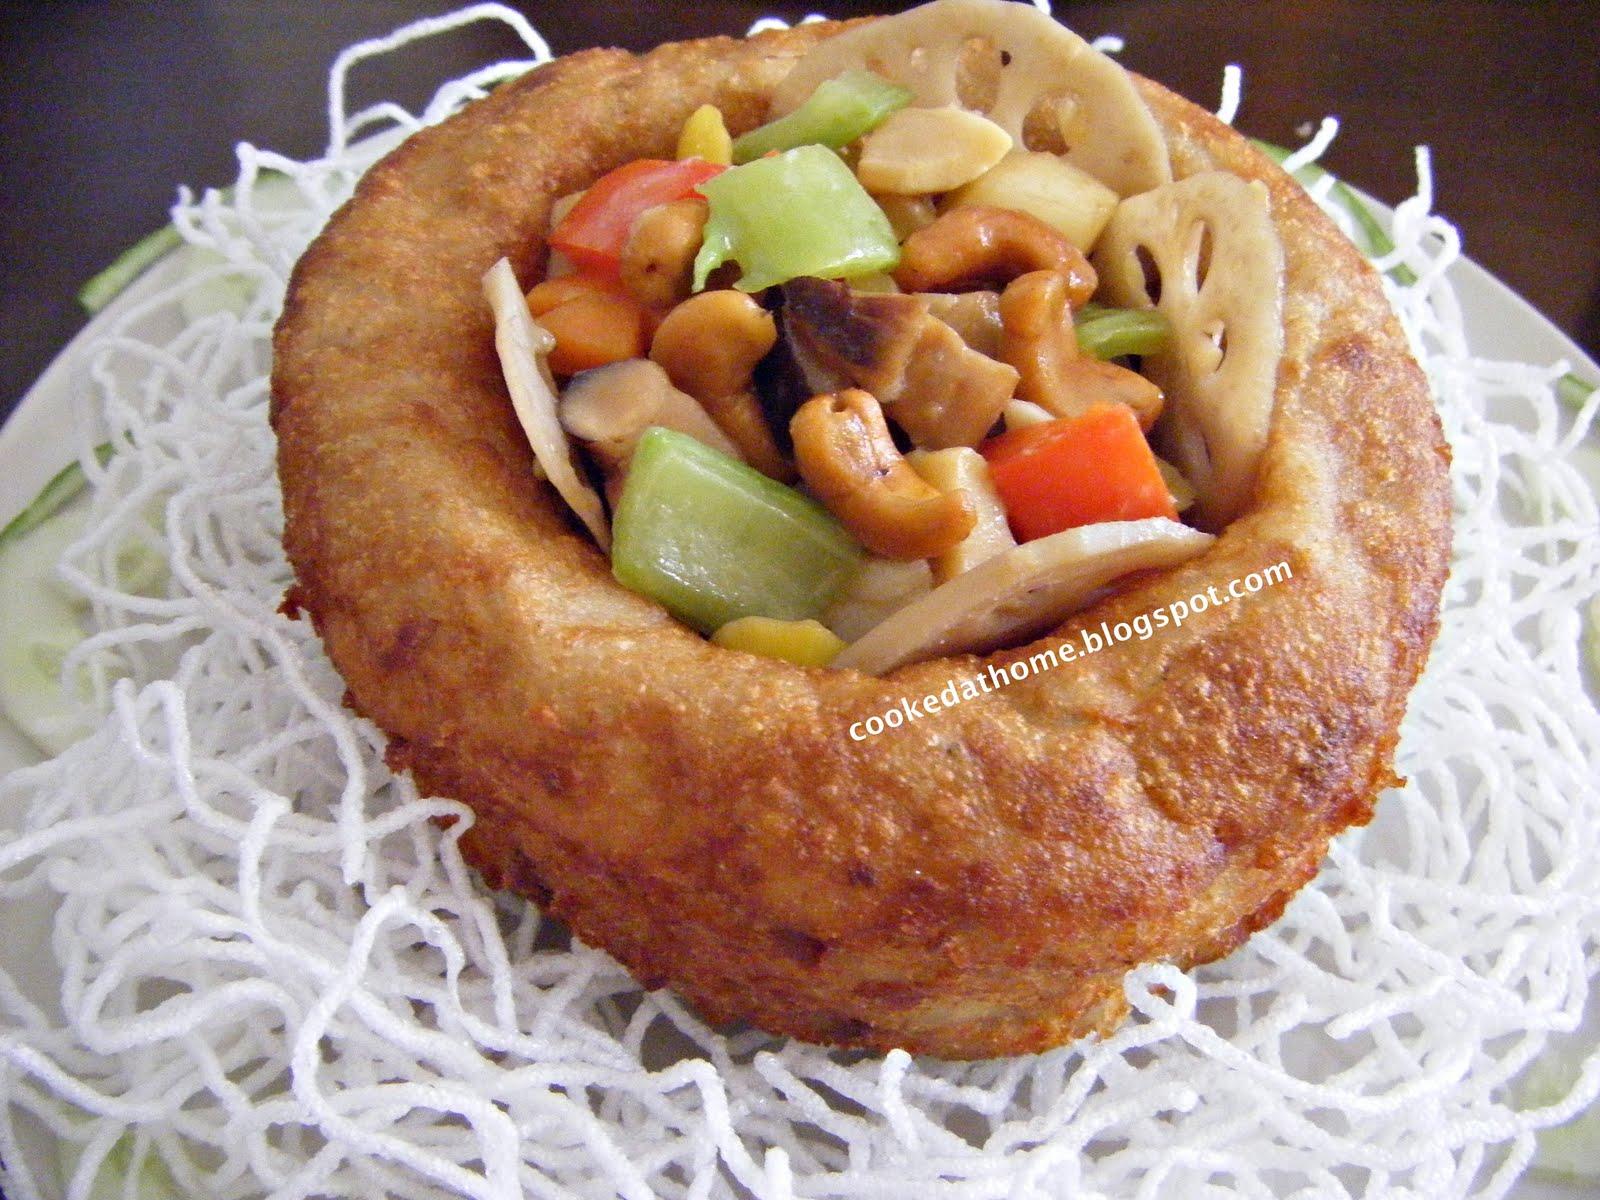 Cooking @ Home: Deep Fried Yam Ring With Assorted Vegetables